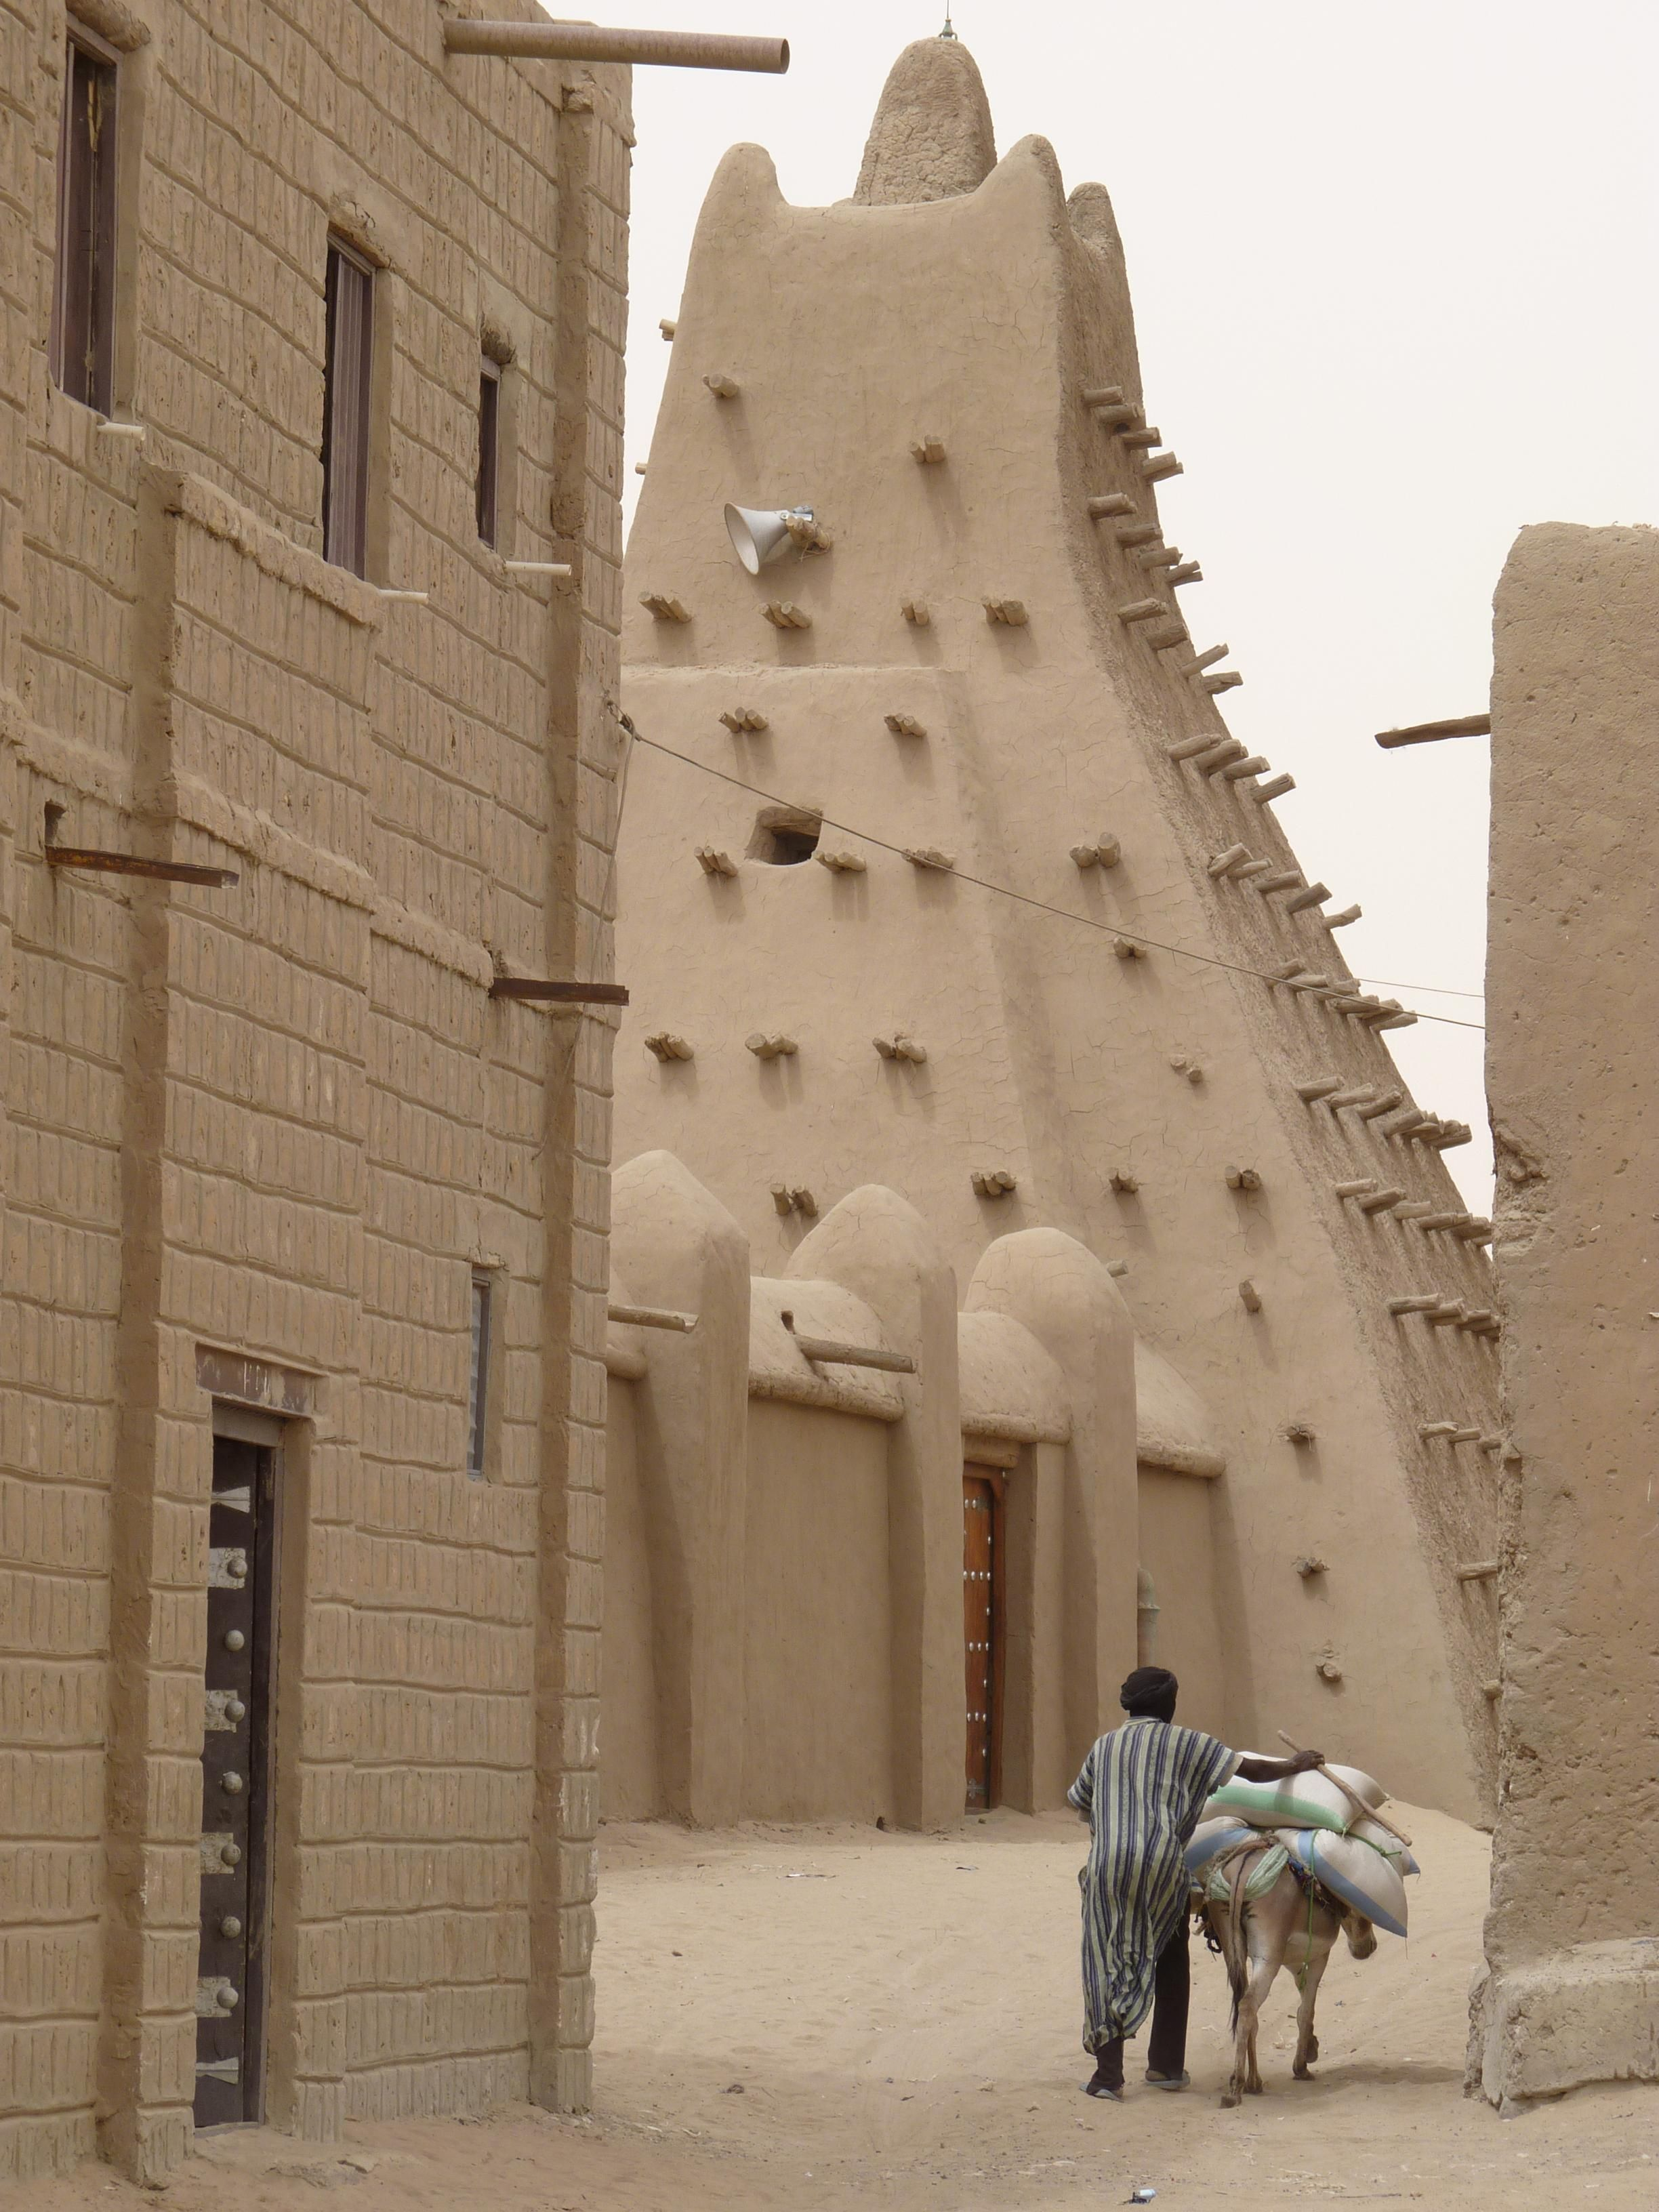 Timbuktu Alley Mali Travel Ttot Nature Photo Vacation Hotel Adventure Landscape Http Bit Ly 2utenp6 Travel Travel Inspiration Places To Travel